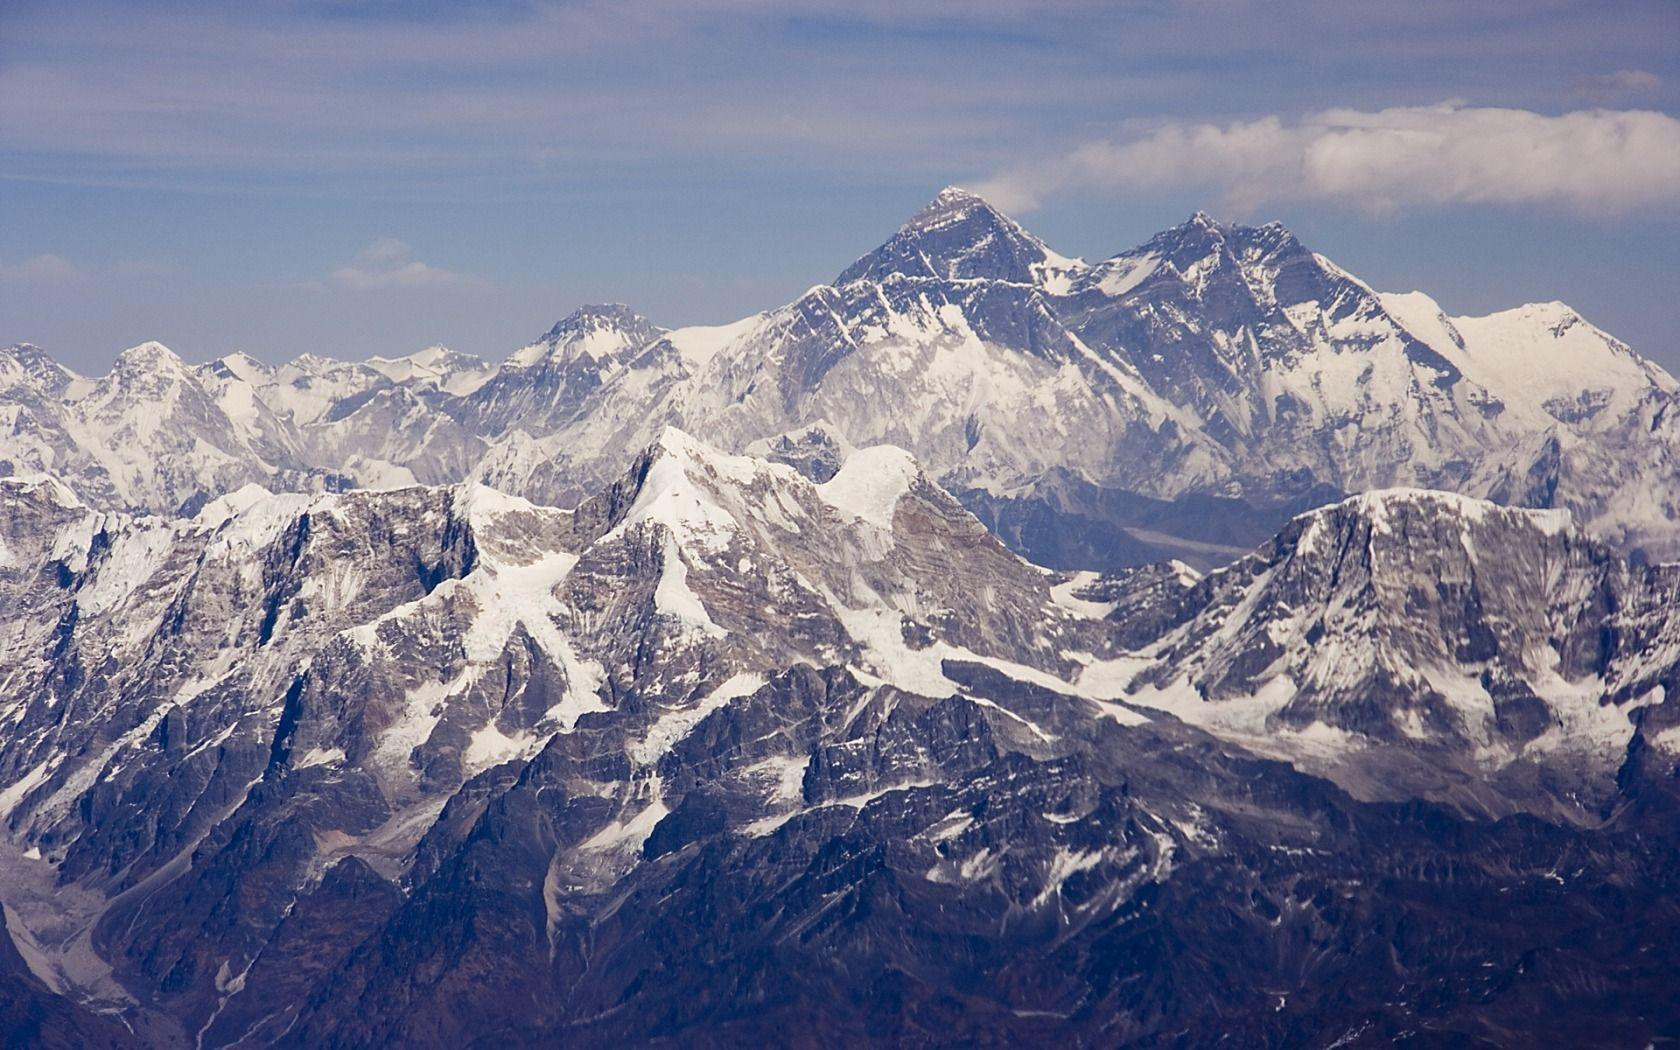 Mount Everest Hd desktop Wallpaper | HD Wallpapers Again